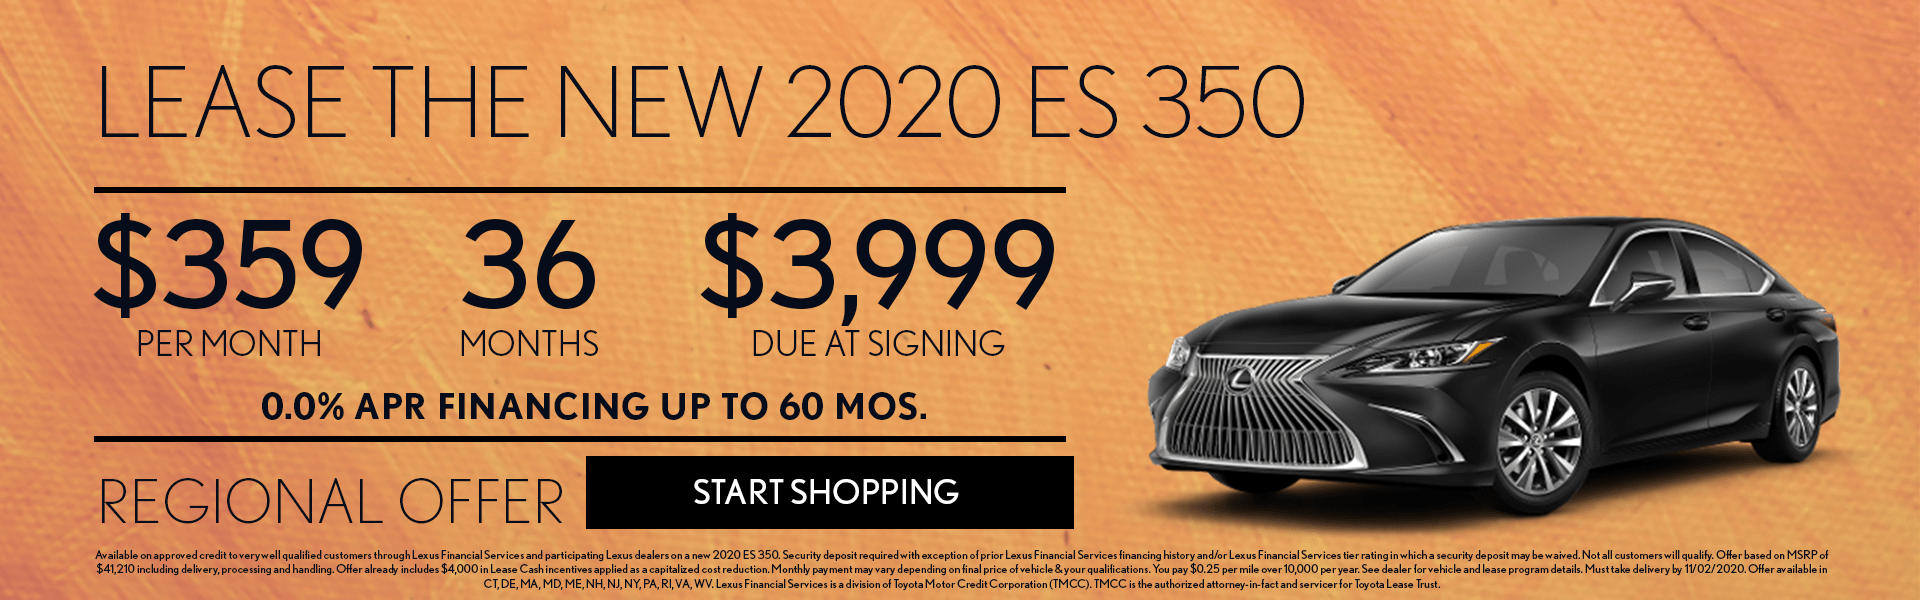 2020 Lexus ES 350 lease offer